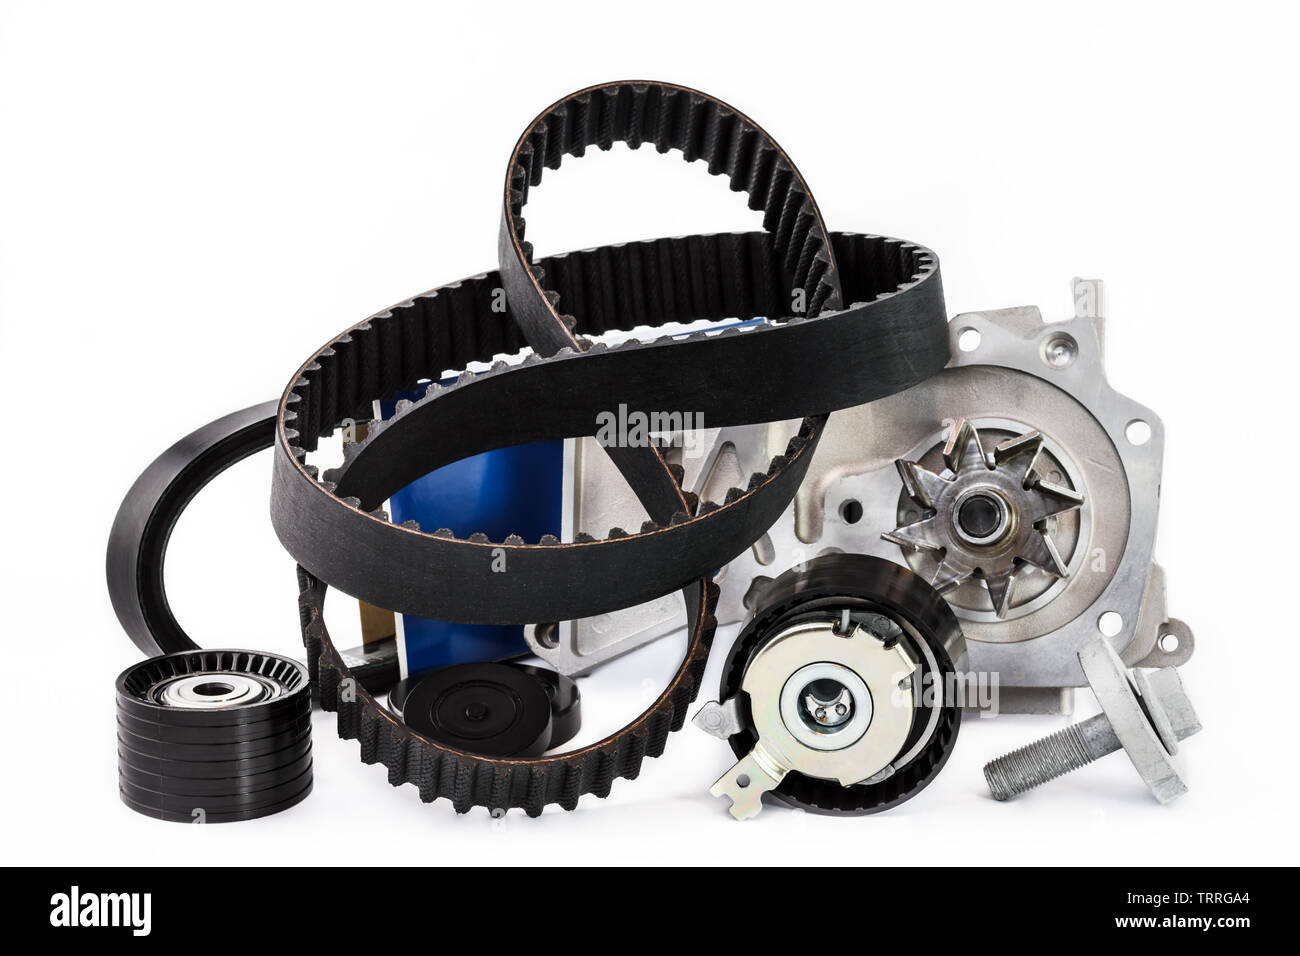 Spare parts for the car. The set of timing belt with rollers and cooling pump on a white background. - Stock Image